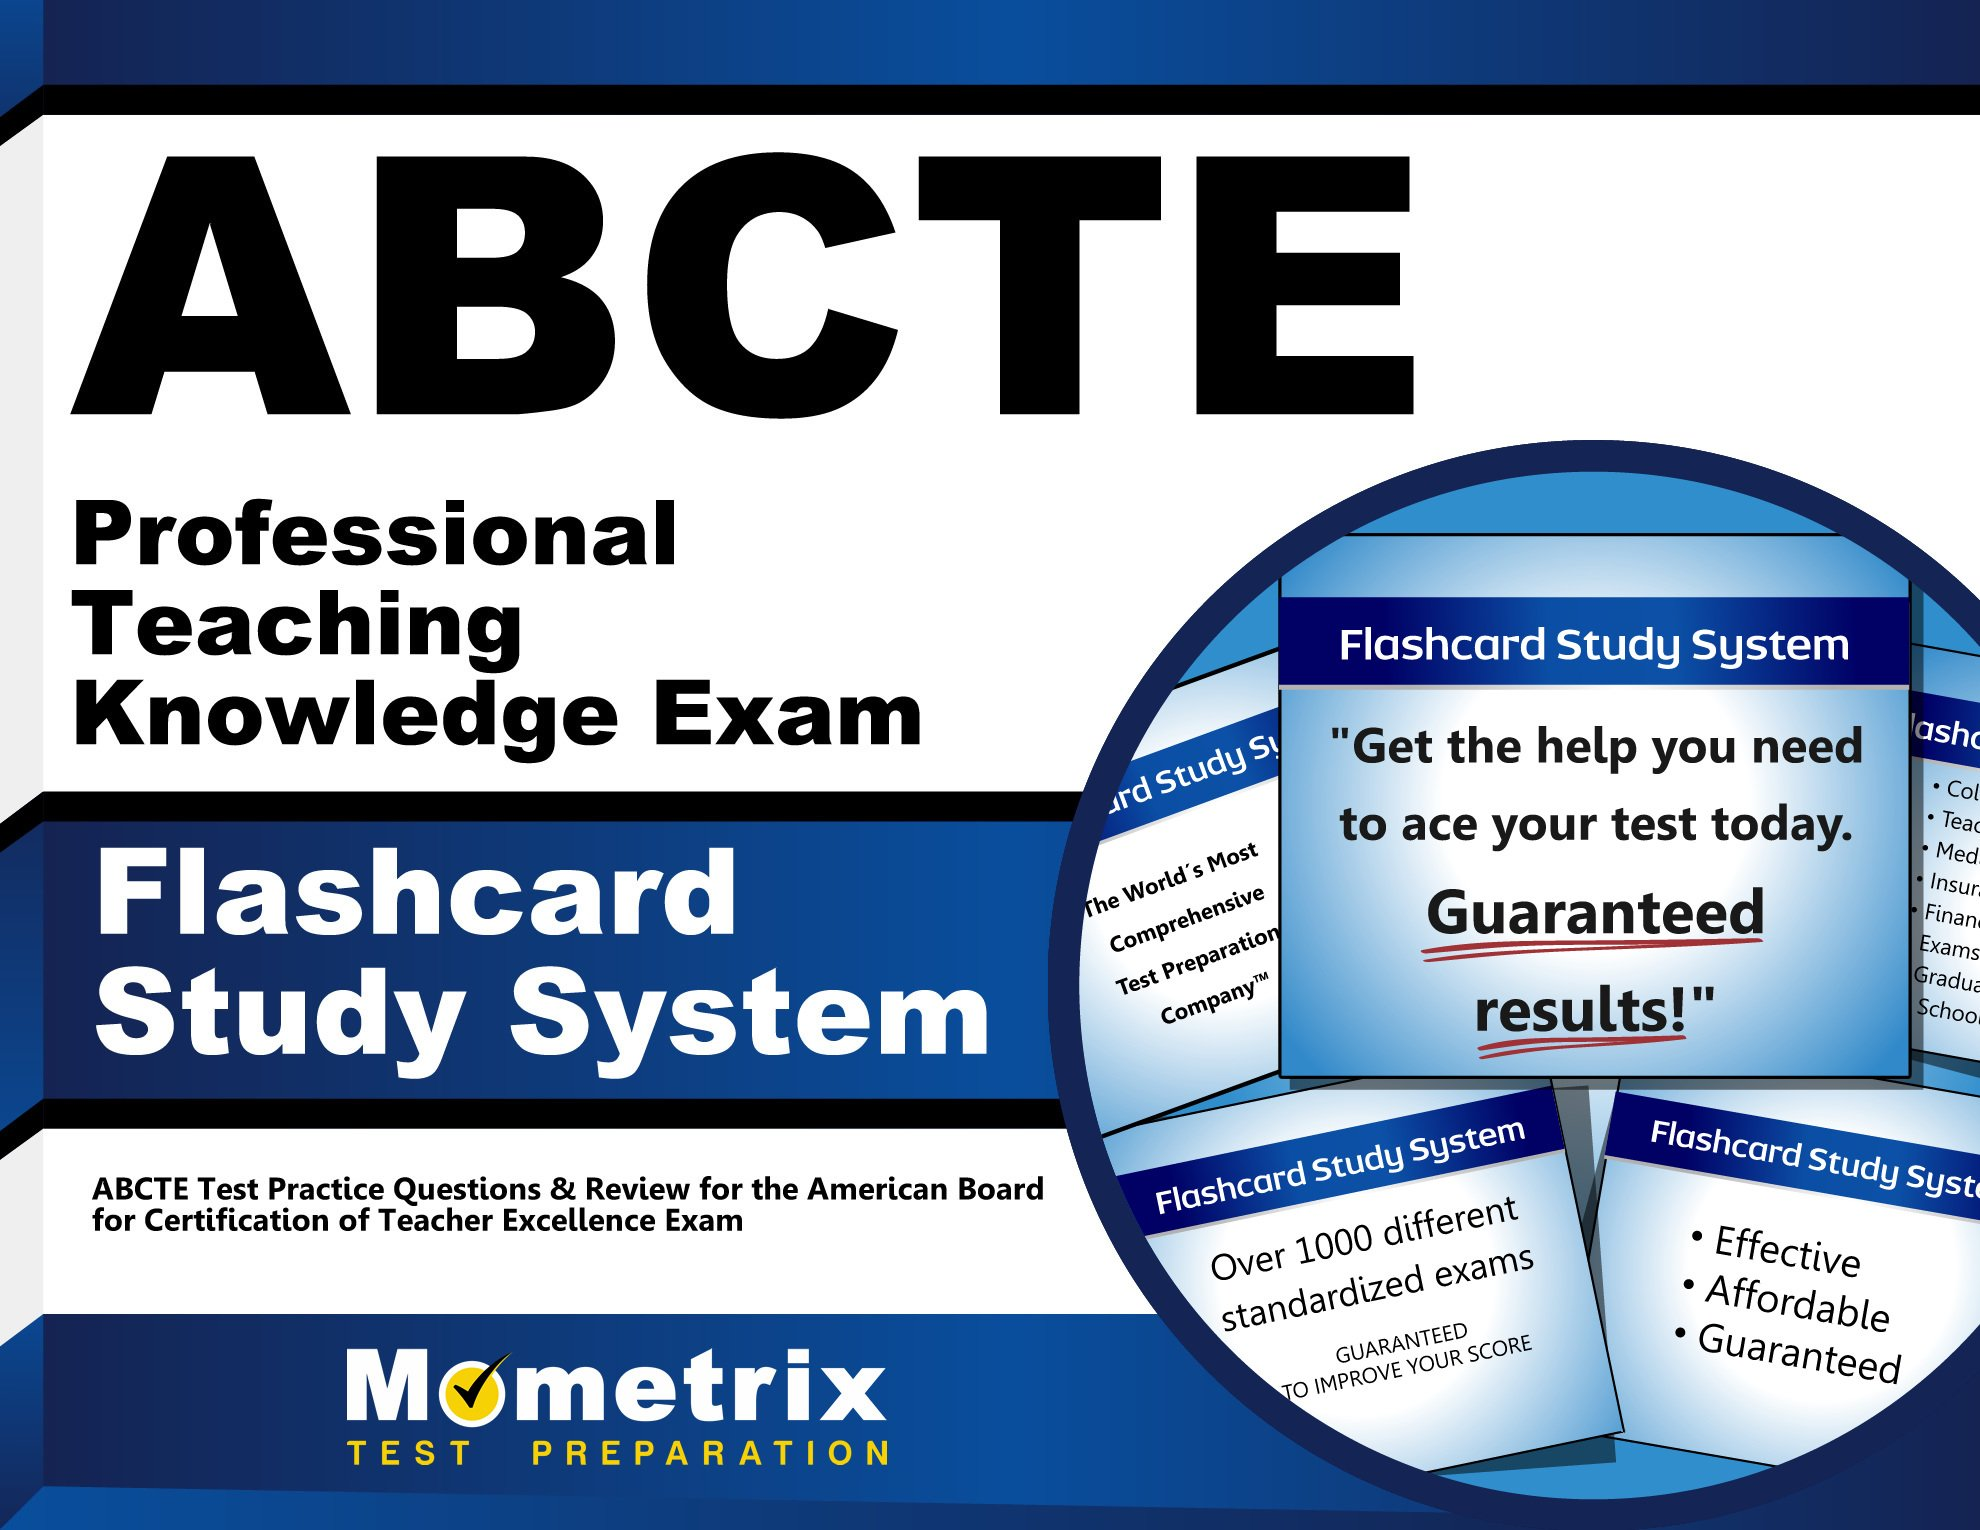 Abcte Professional Teaching Knowledge Exam Flashcard Study System